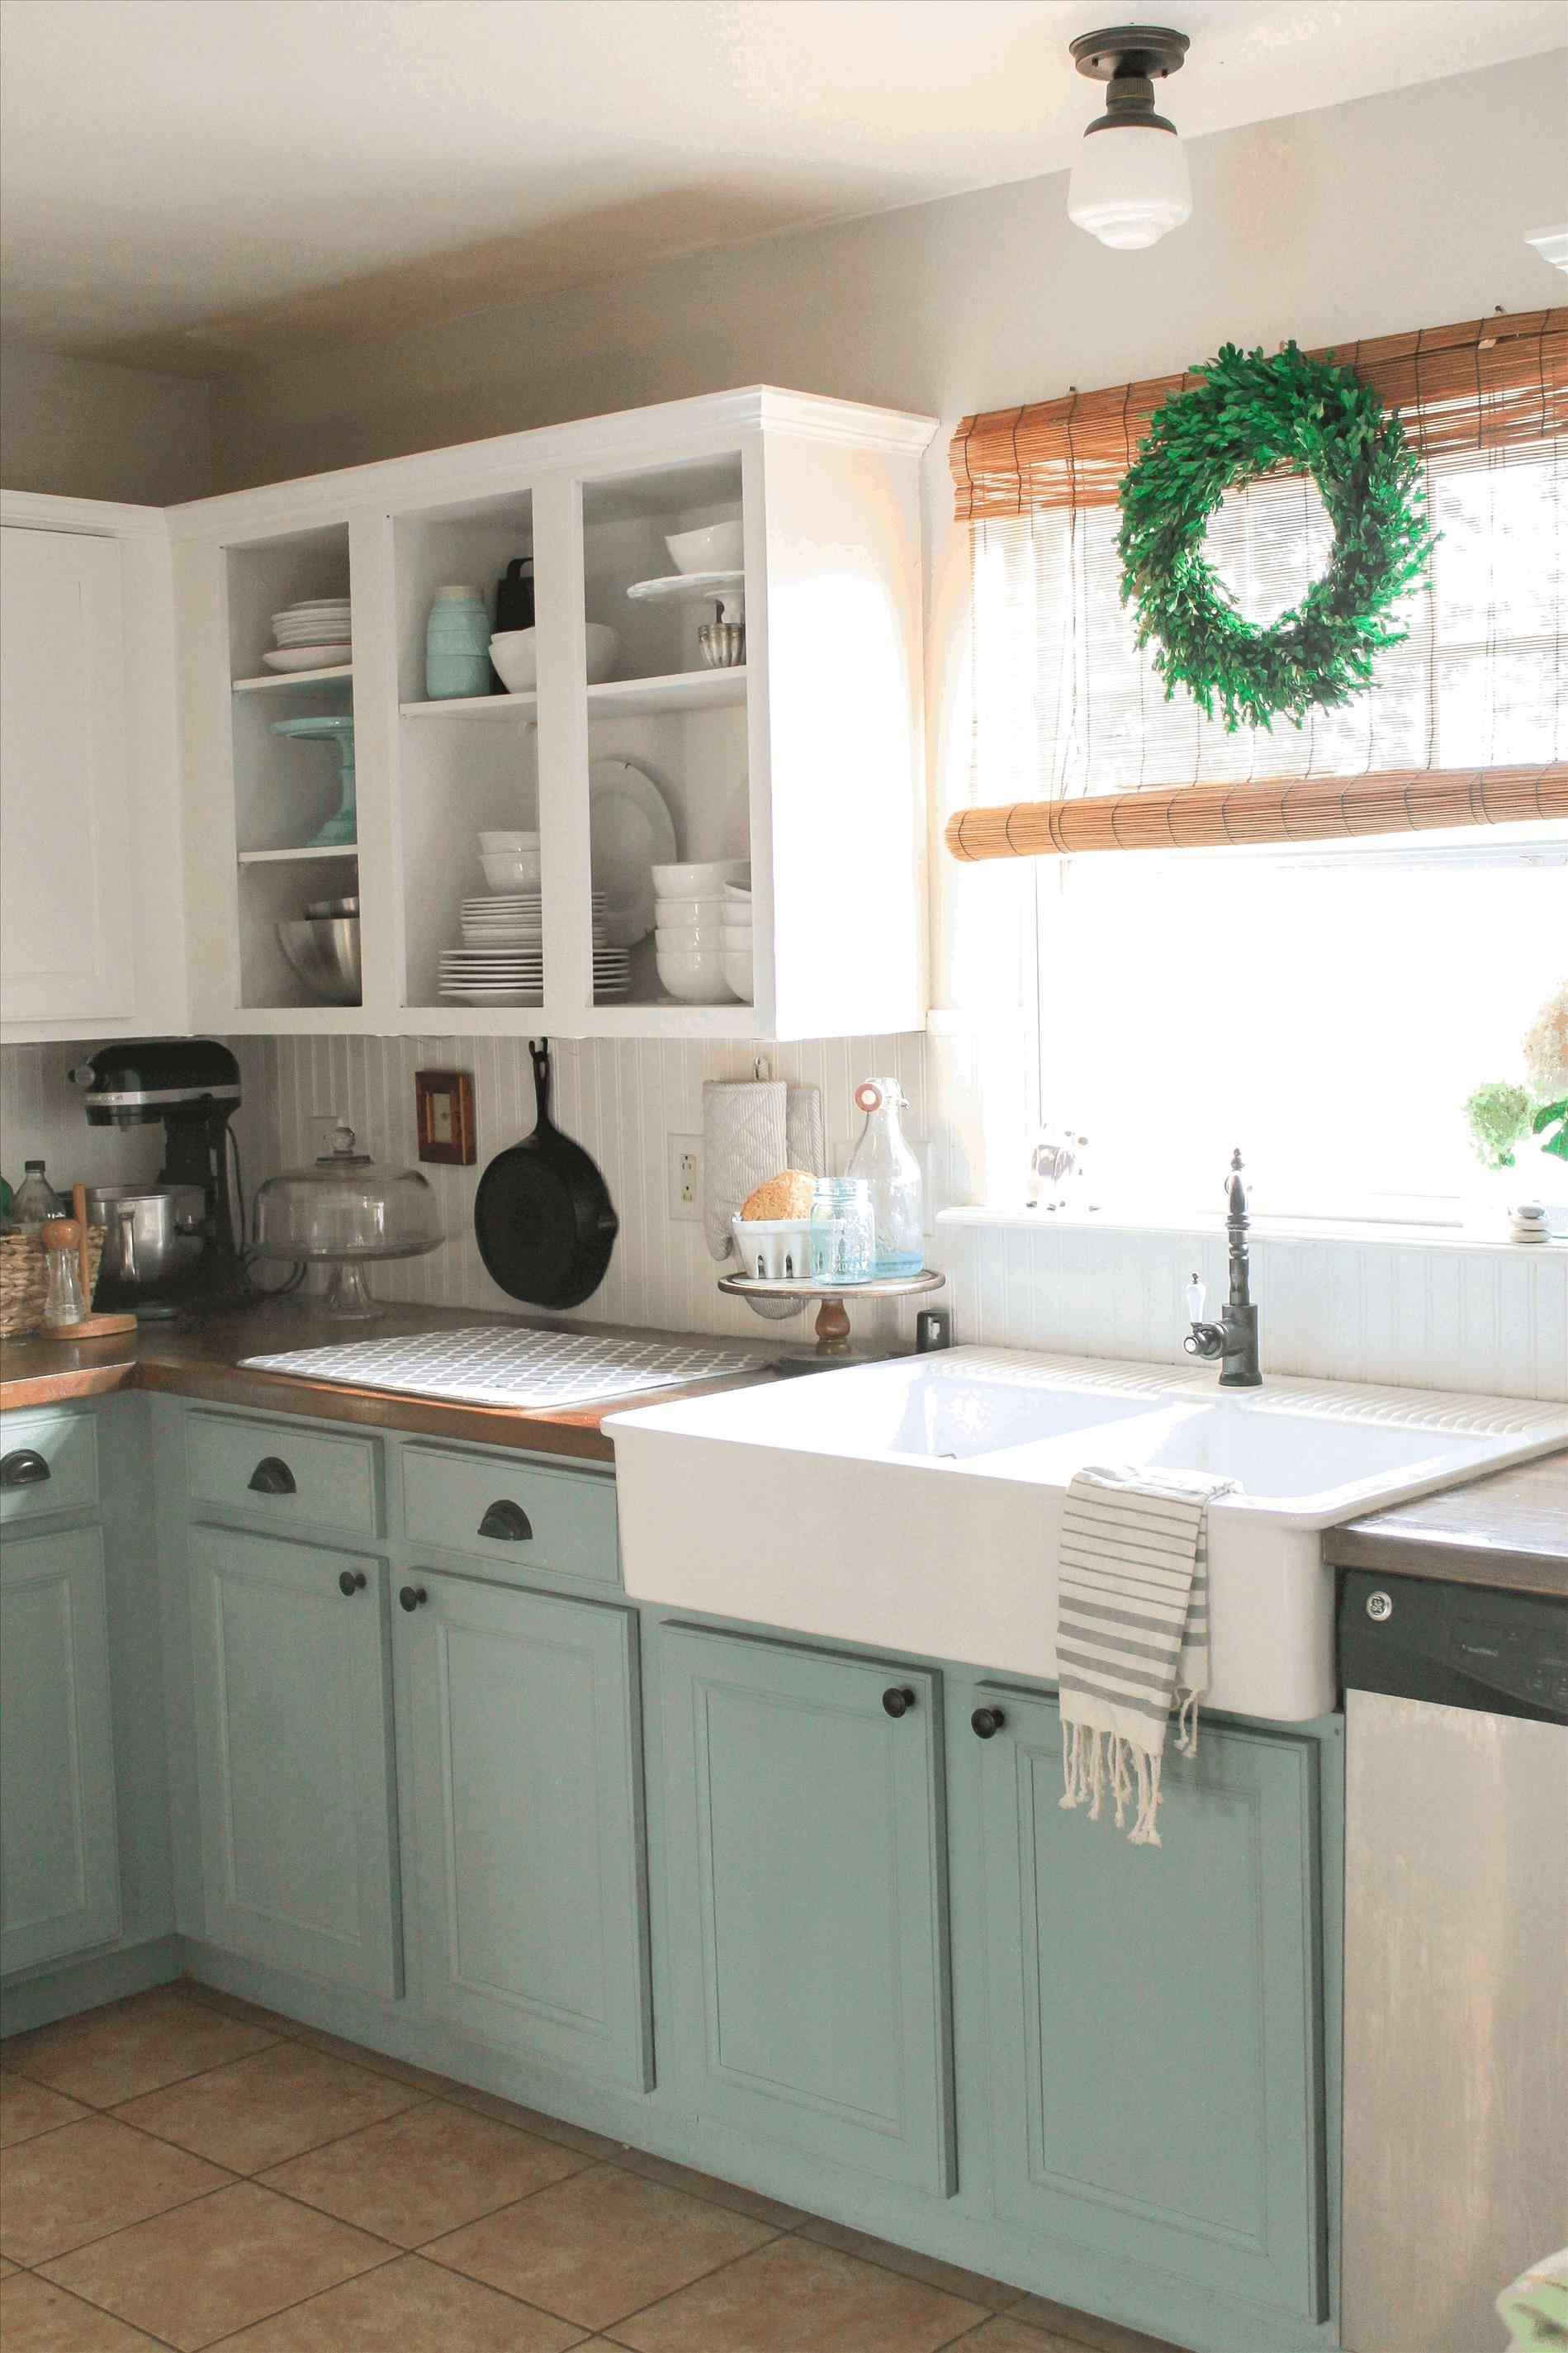 Best 15 Open Kitchen Cabinets No Doors Ideas Shabby Chic Kitchen Cabinets Simple Kitchen Cabinets Open Kitchen Cabinets